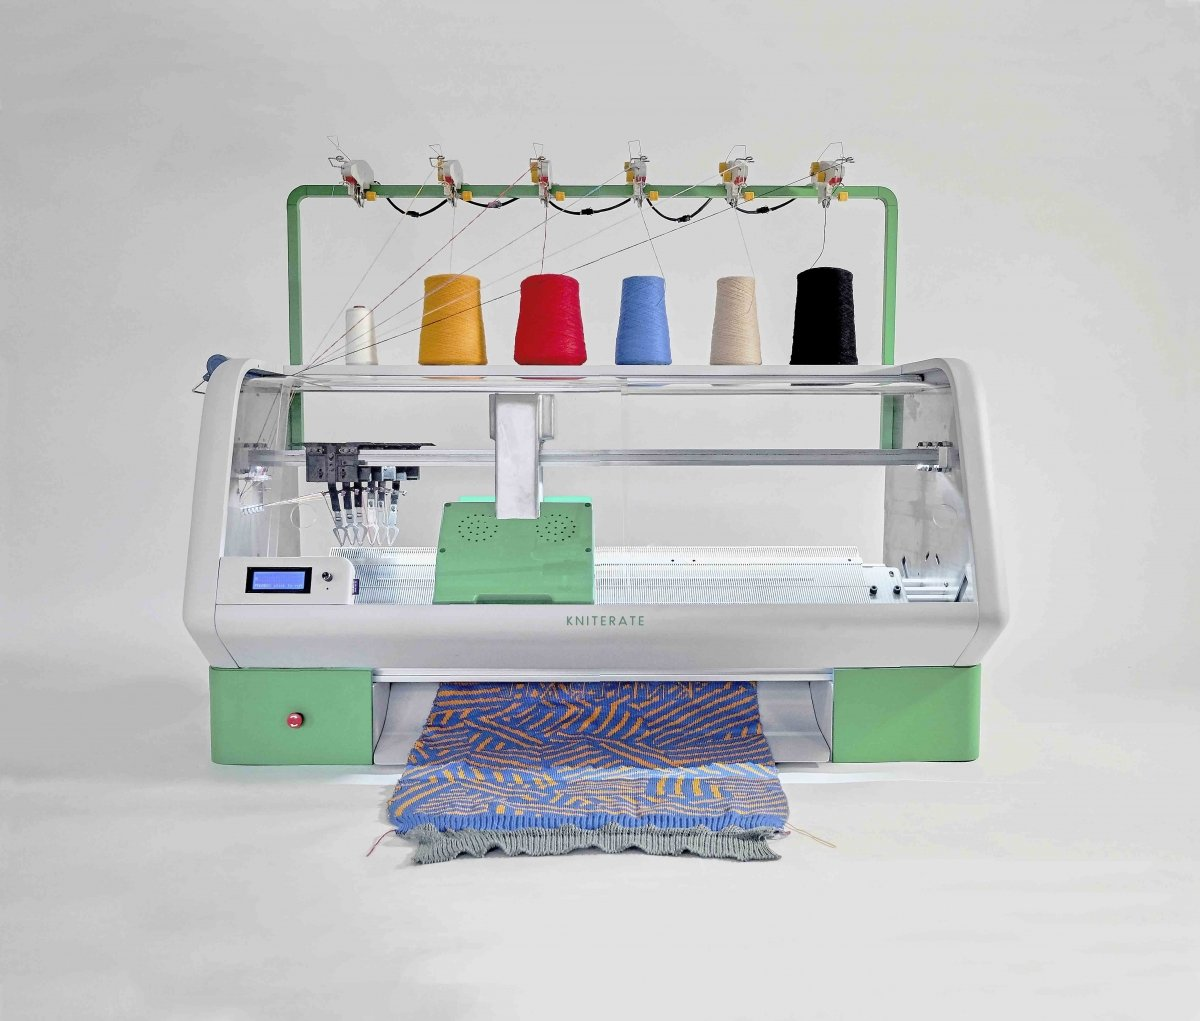 Sustainable textile startup Kniterate has produced a compact knitting machine for communities.